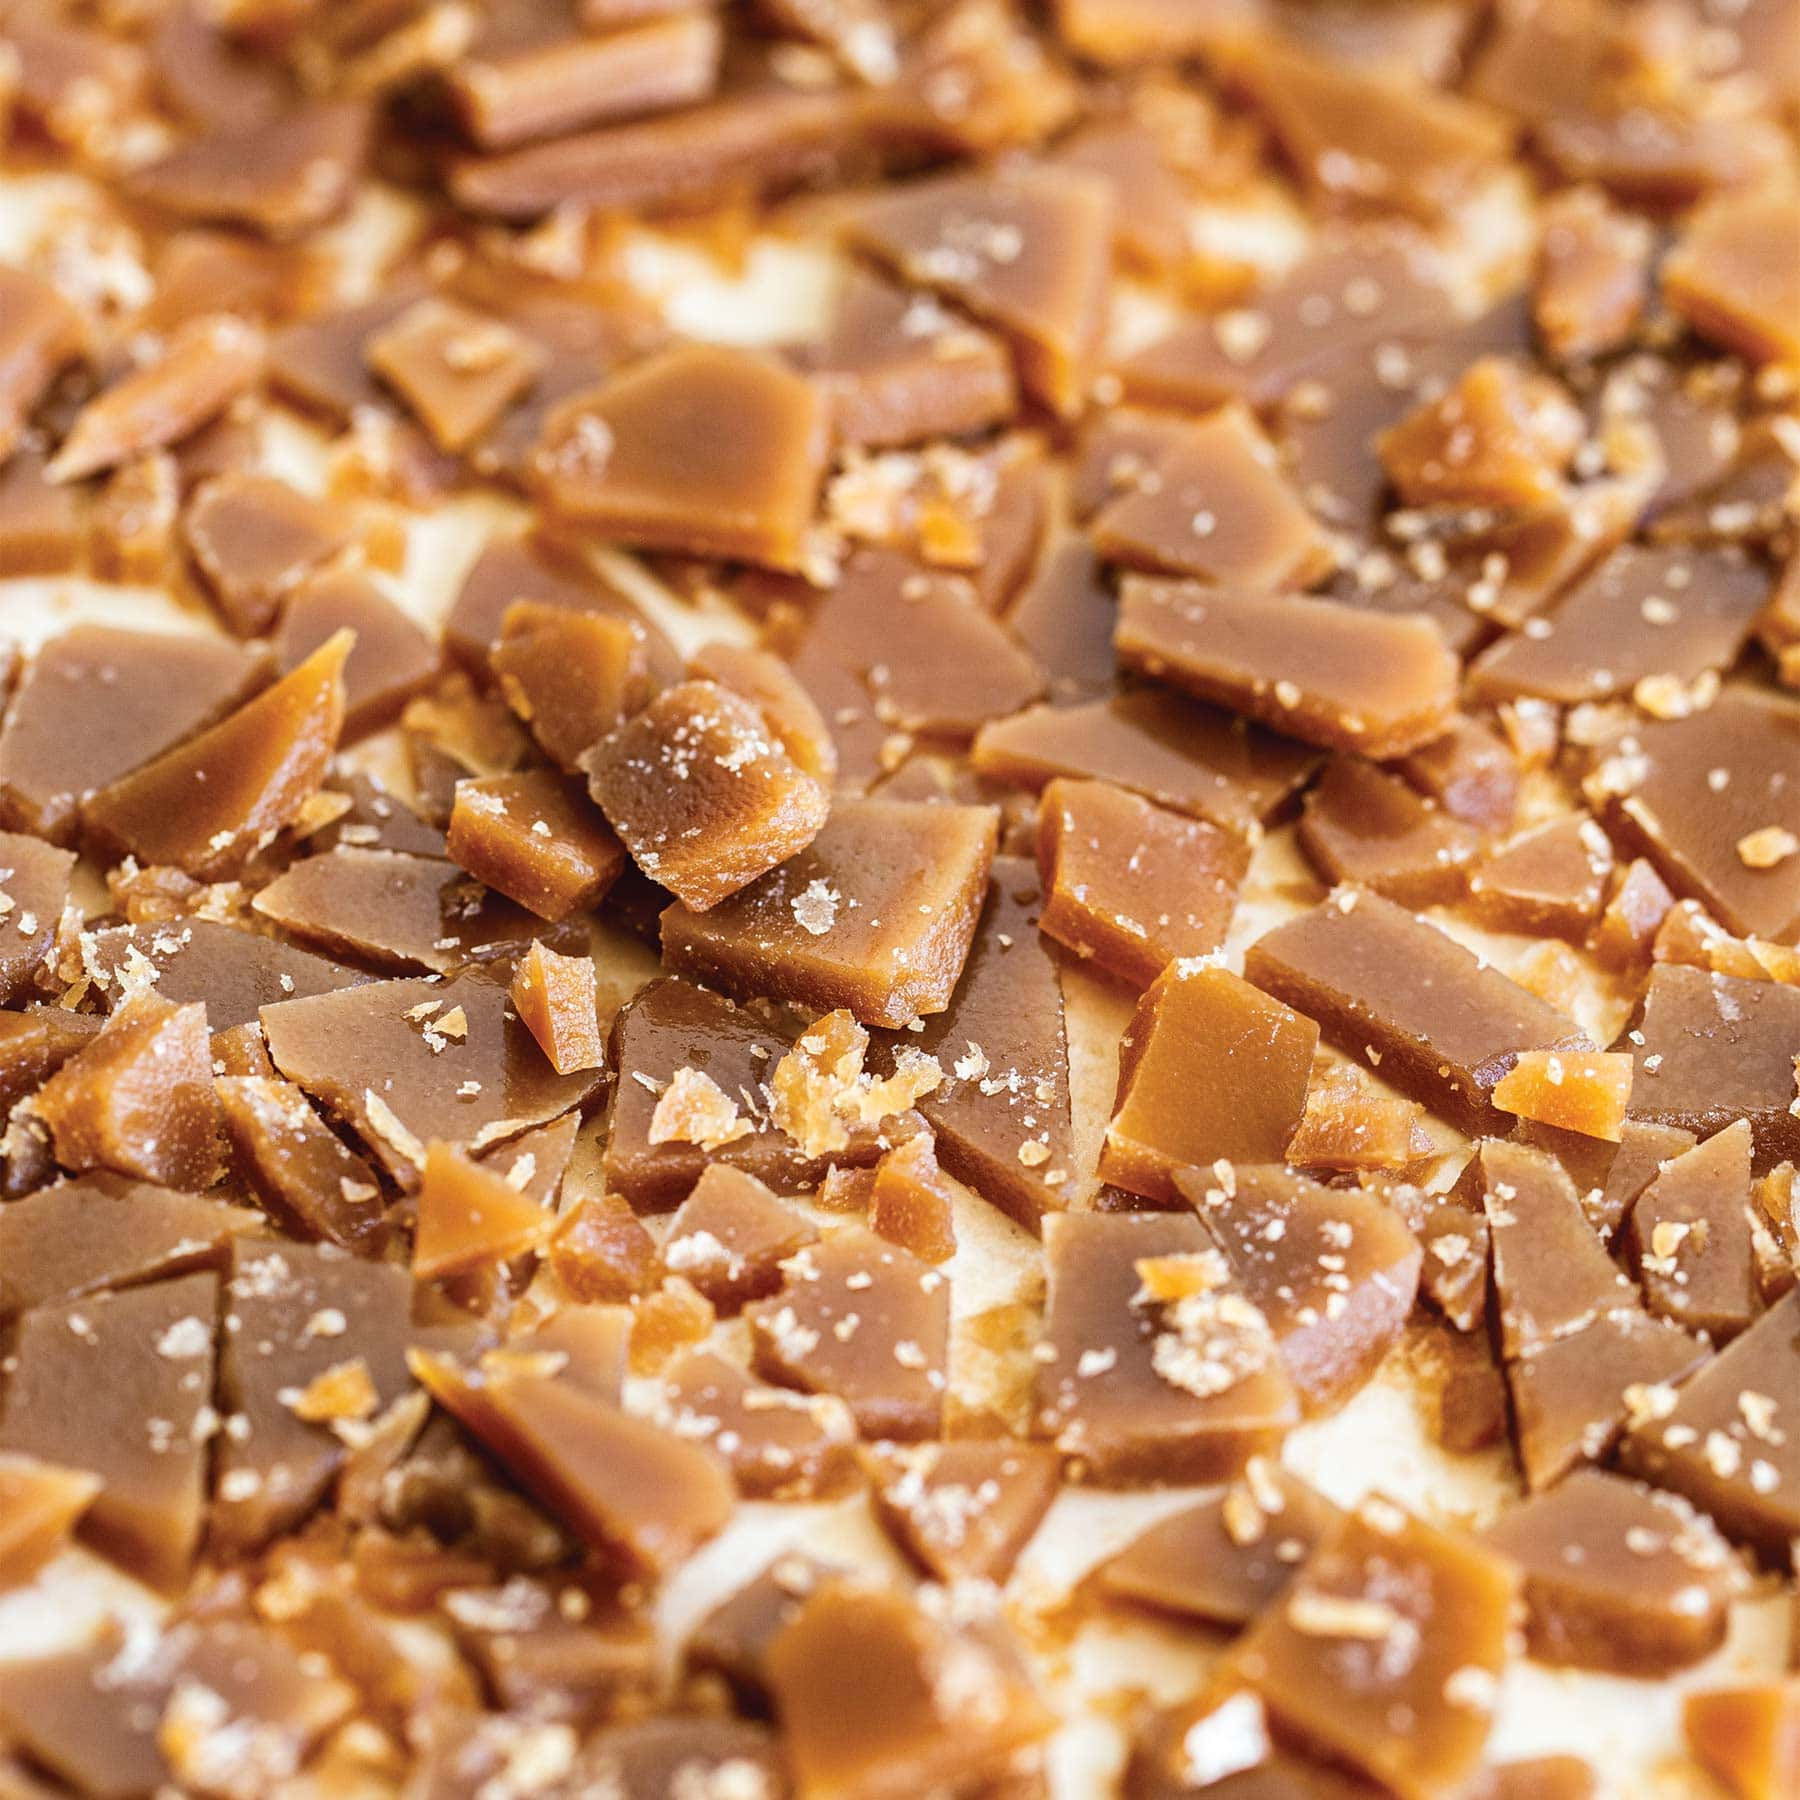 chopped up pieces of DIY toffee bits